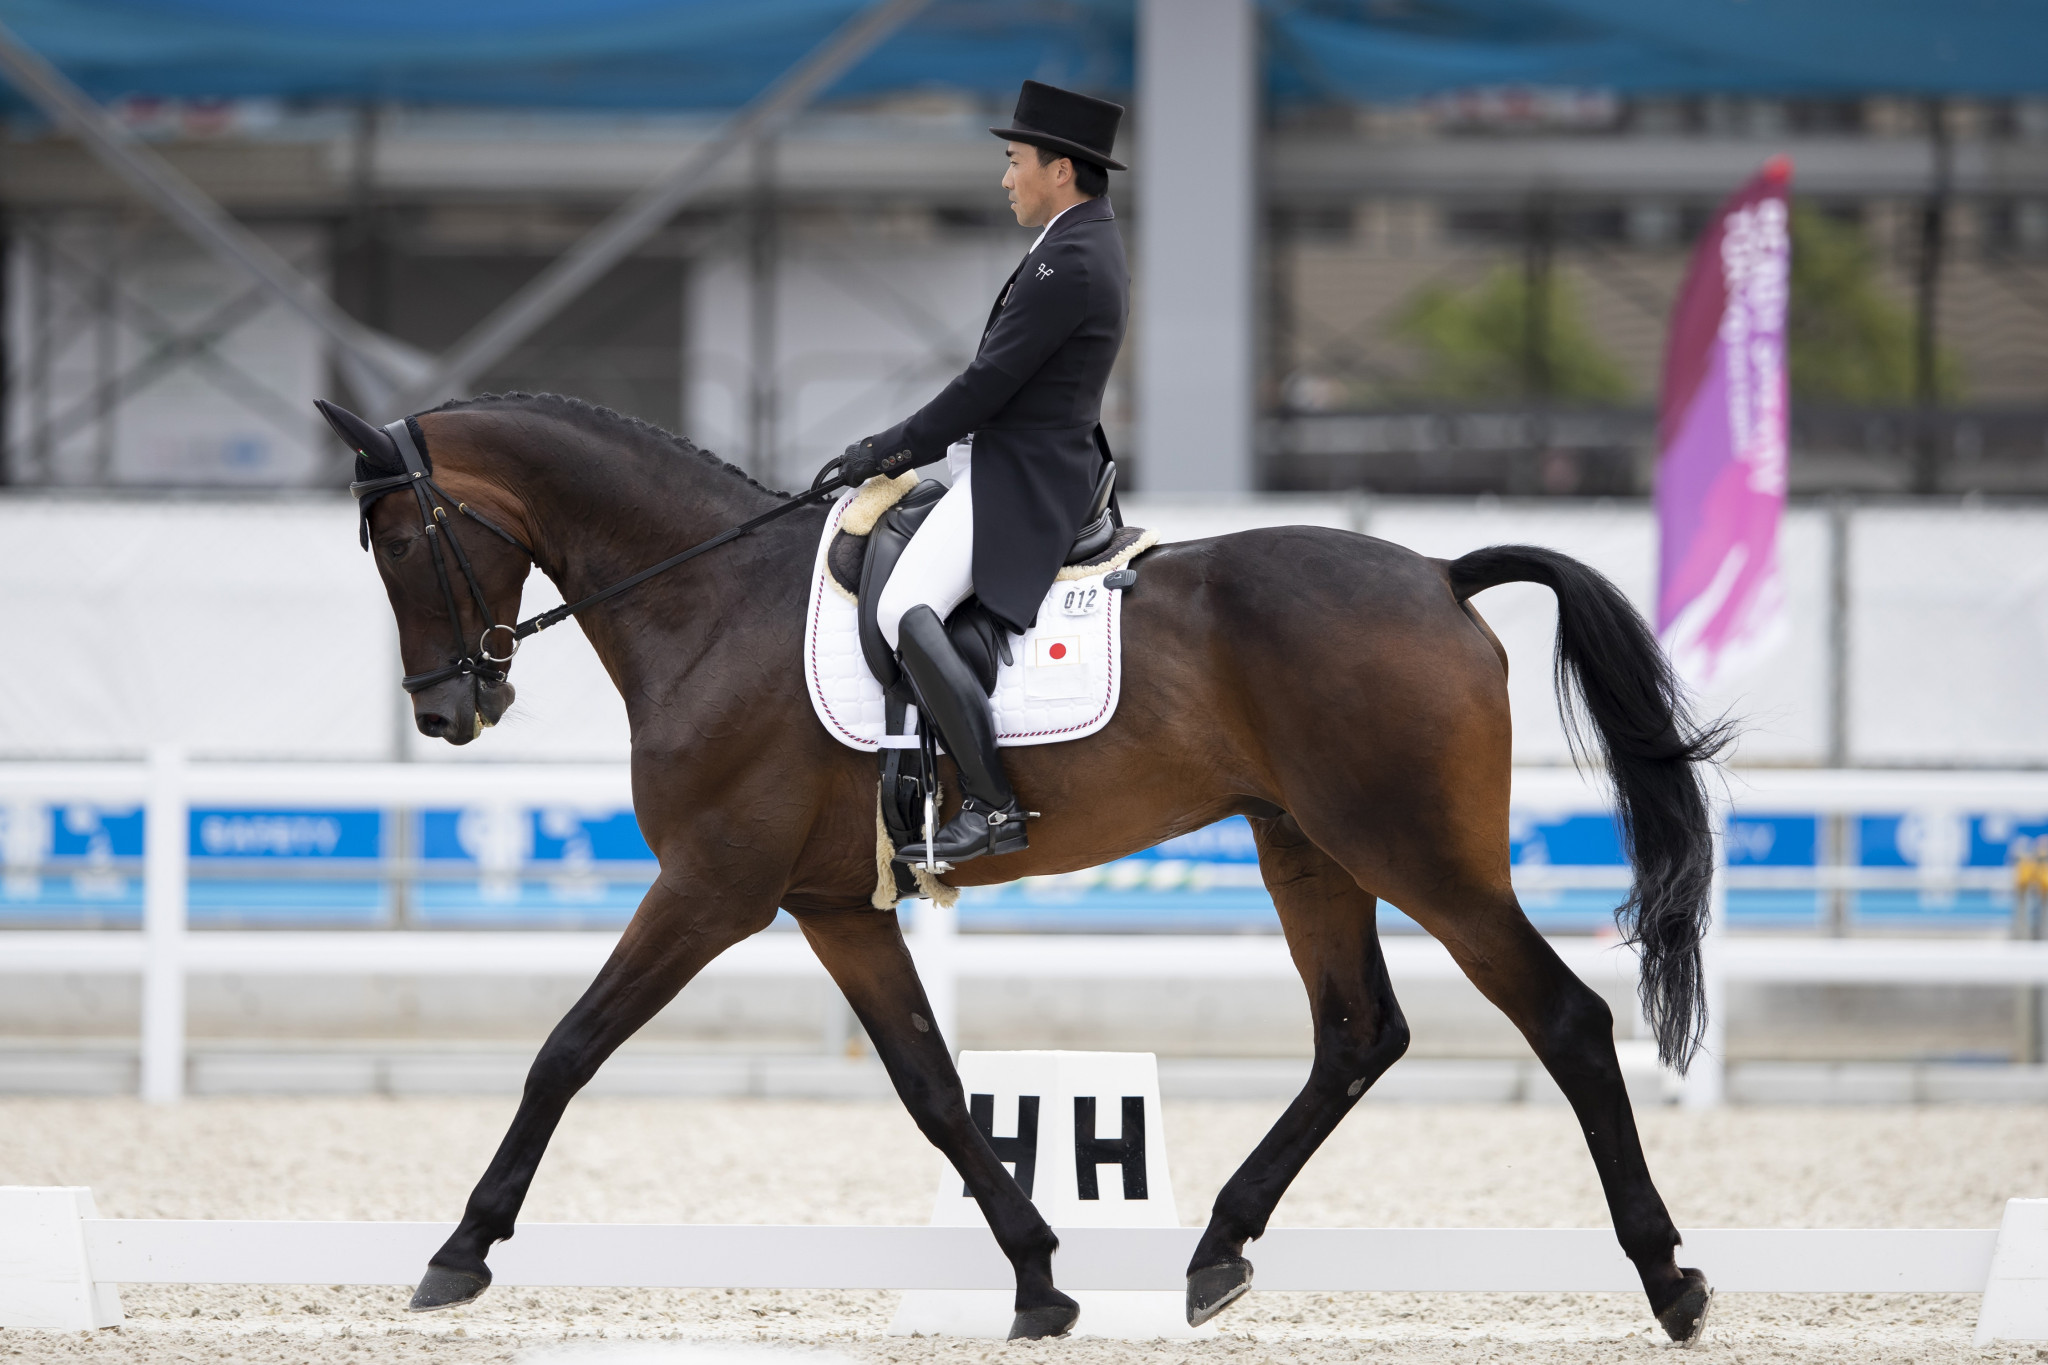 Japan's Yoshiaki Oiwa has put down a strong marker for the home side by taking the early lead after today's dressage phase at the equestrian test event for the Tokyo 2020 Olympic Games ©FEI/Yusuke Nakanishi